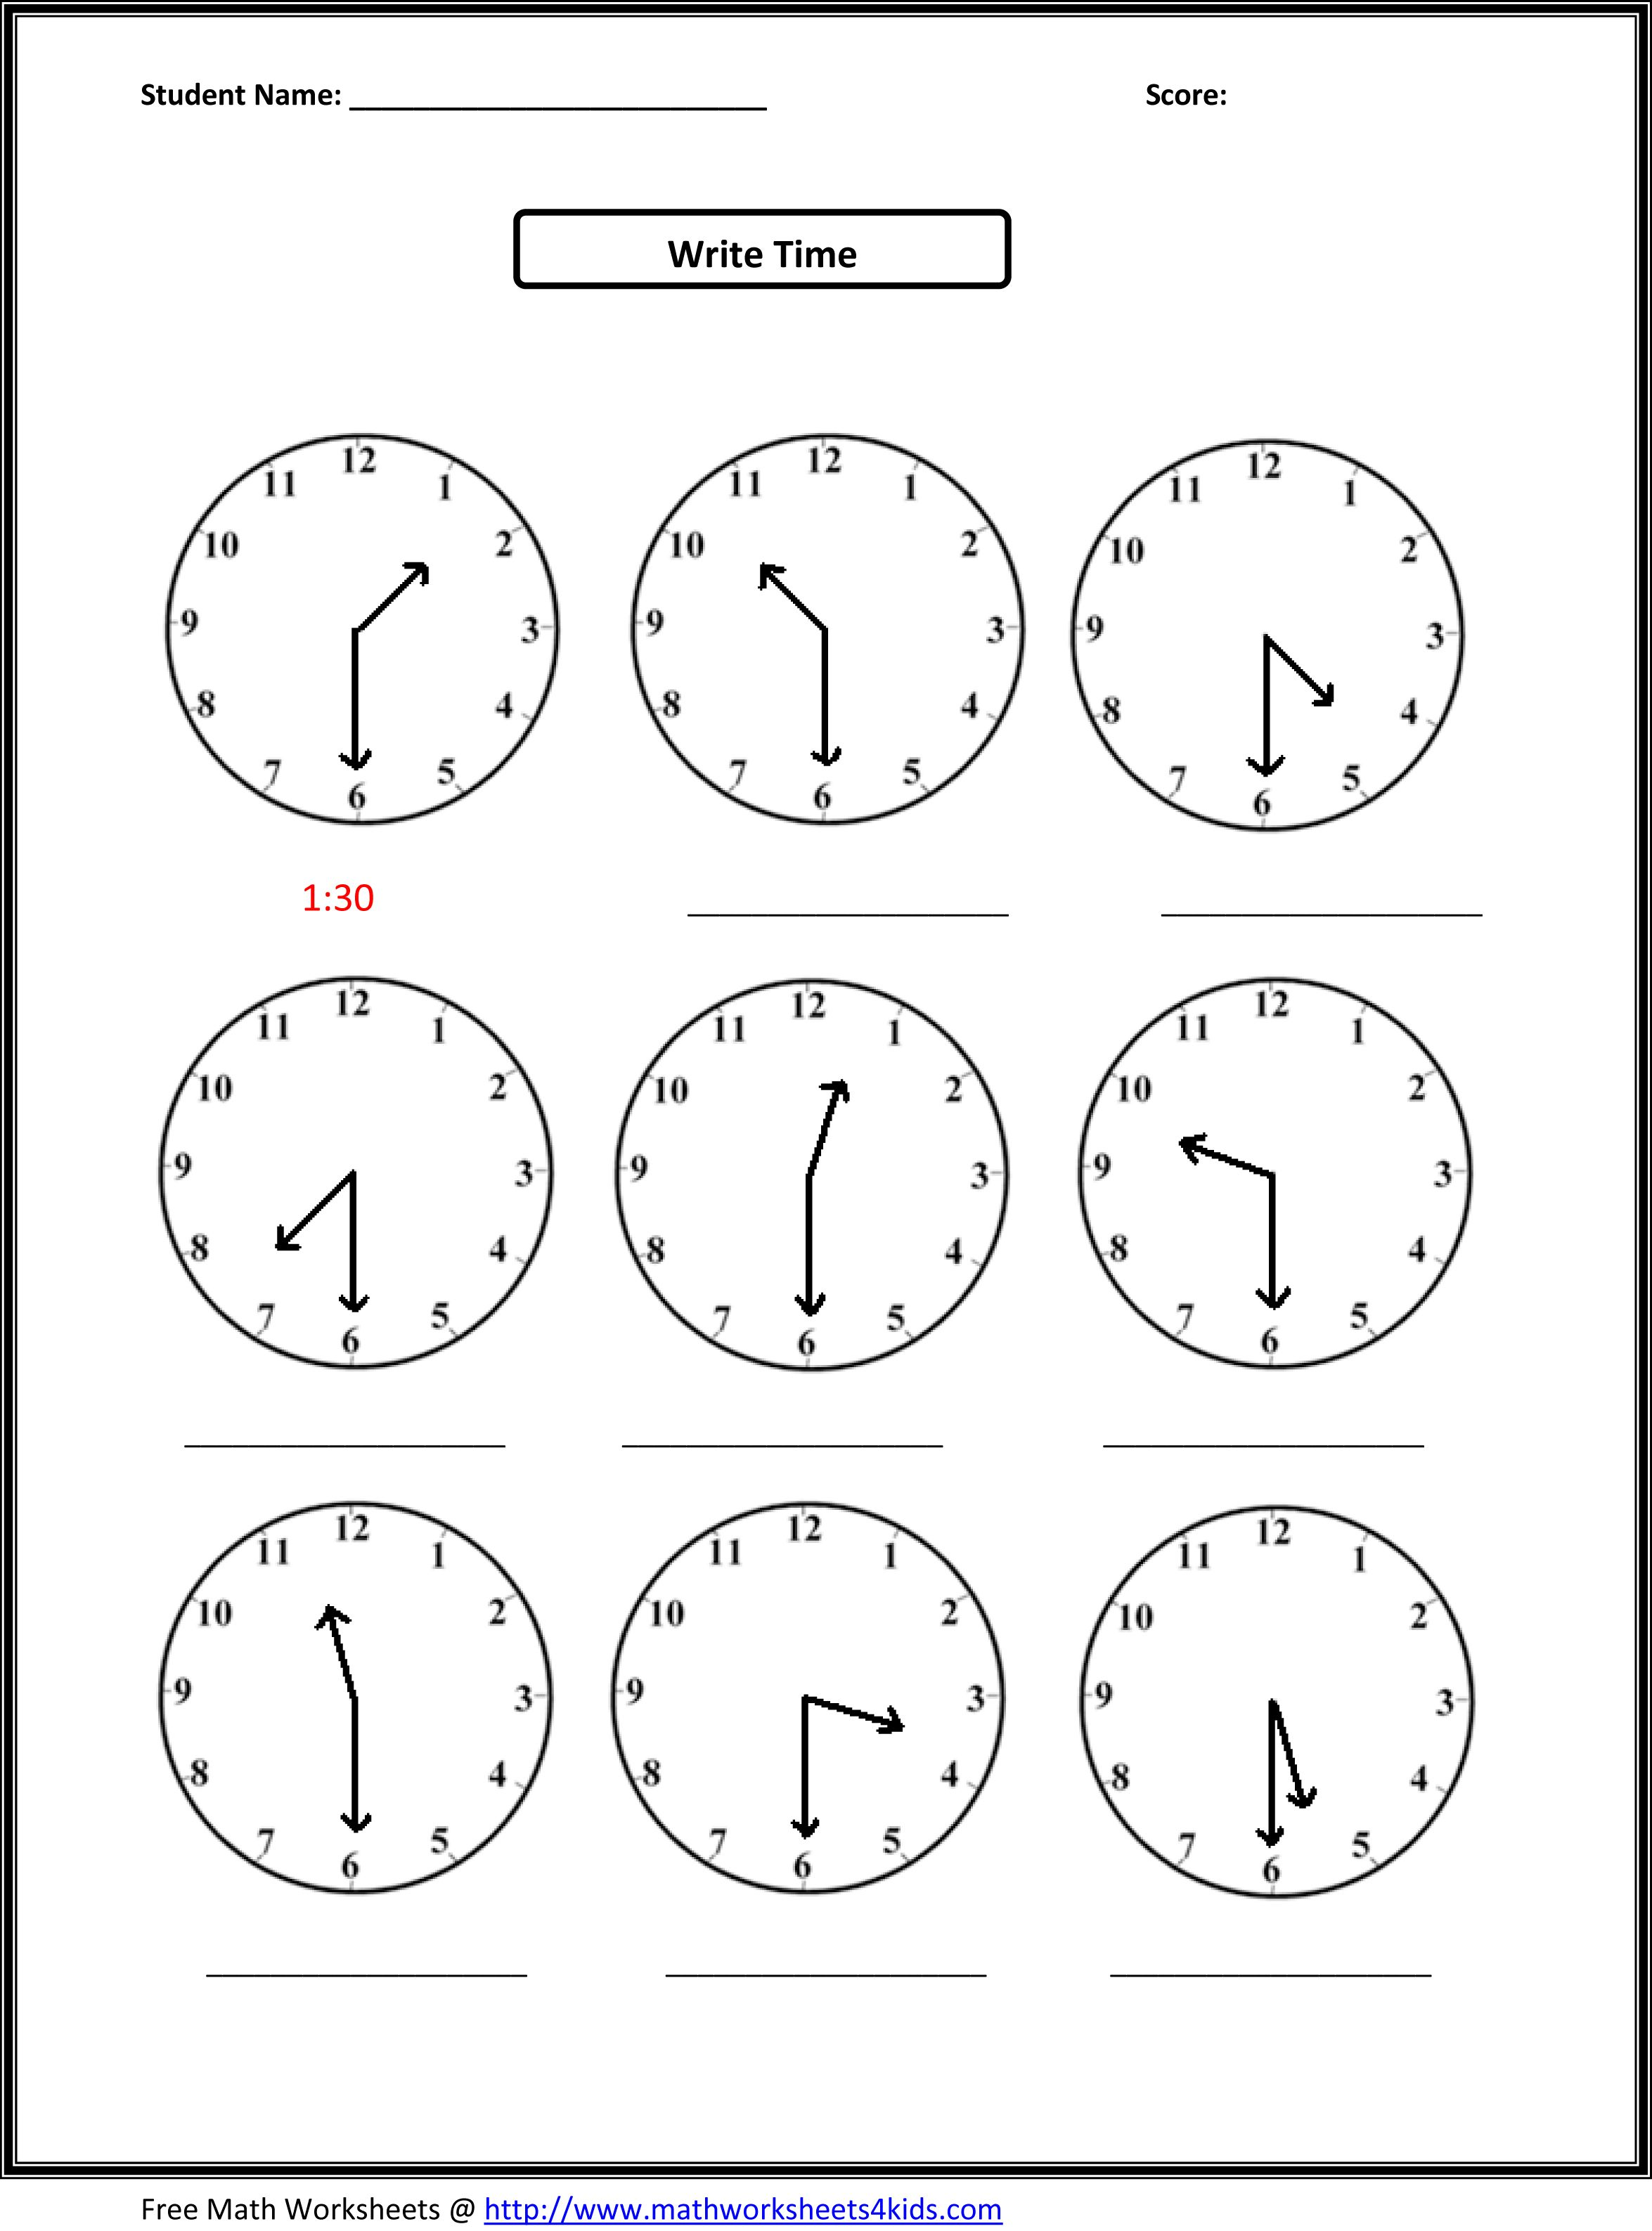 Weirdmailus  Wonderful Worksheet On Time For Grade   Reocurent With Engaging Free Printable Telling Time Worksheets Nd Grade  Reocurent With Alluring Reading A Topographic Map Worksheet Also Code Worksheets In Addition Order Of Operations Fun Worksheet And Prentice Hall Biology Worksheet Answers As Well As Multiplication Worksheet Grade  Additionally Multiplication By  Worksheets From Reocurentcom With Weirdmailus  Engaging Worksheet On Time For Grade   Reocurent With Alluring Free Printable Telling Time Worksheets Nd Grade  Reocurent And Wonderful Reading A Topographic Map Worksheet Also Code Worksheets In Addition Order Of Operations Fun Worksheet From Reocurentcom